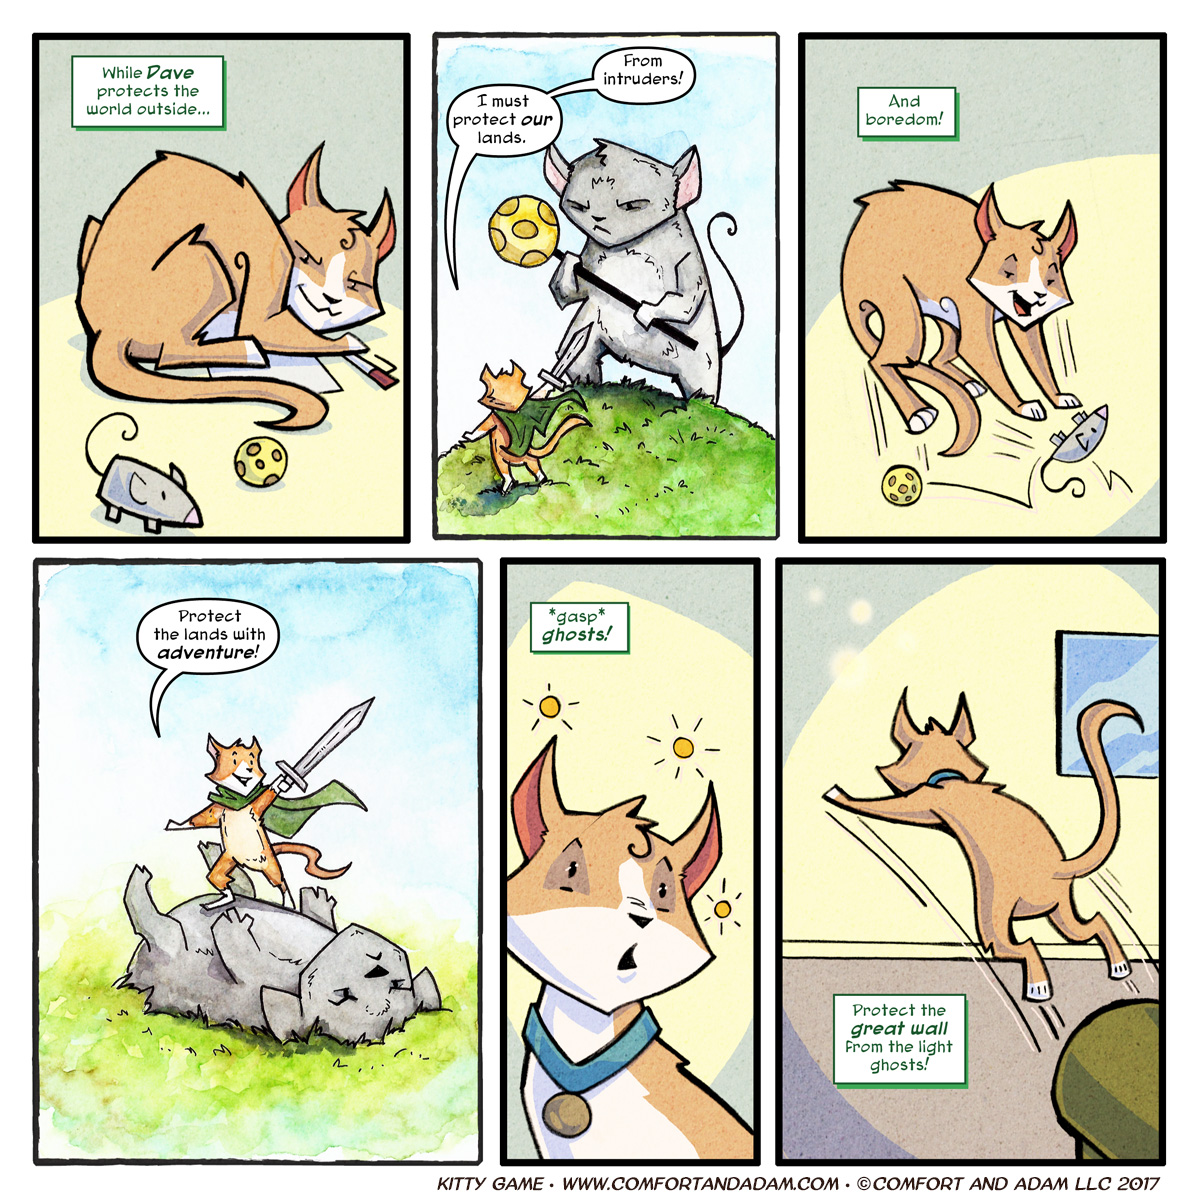 Kitty Game 09: Protecting the House